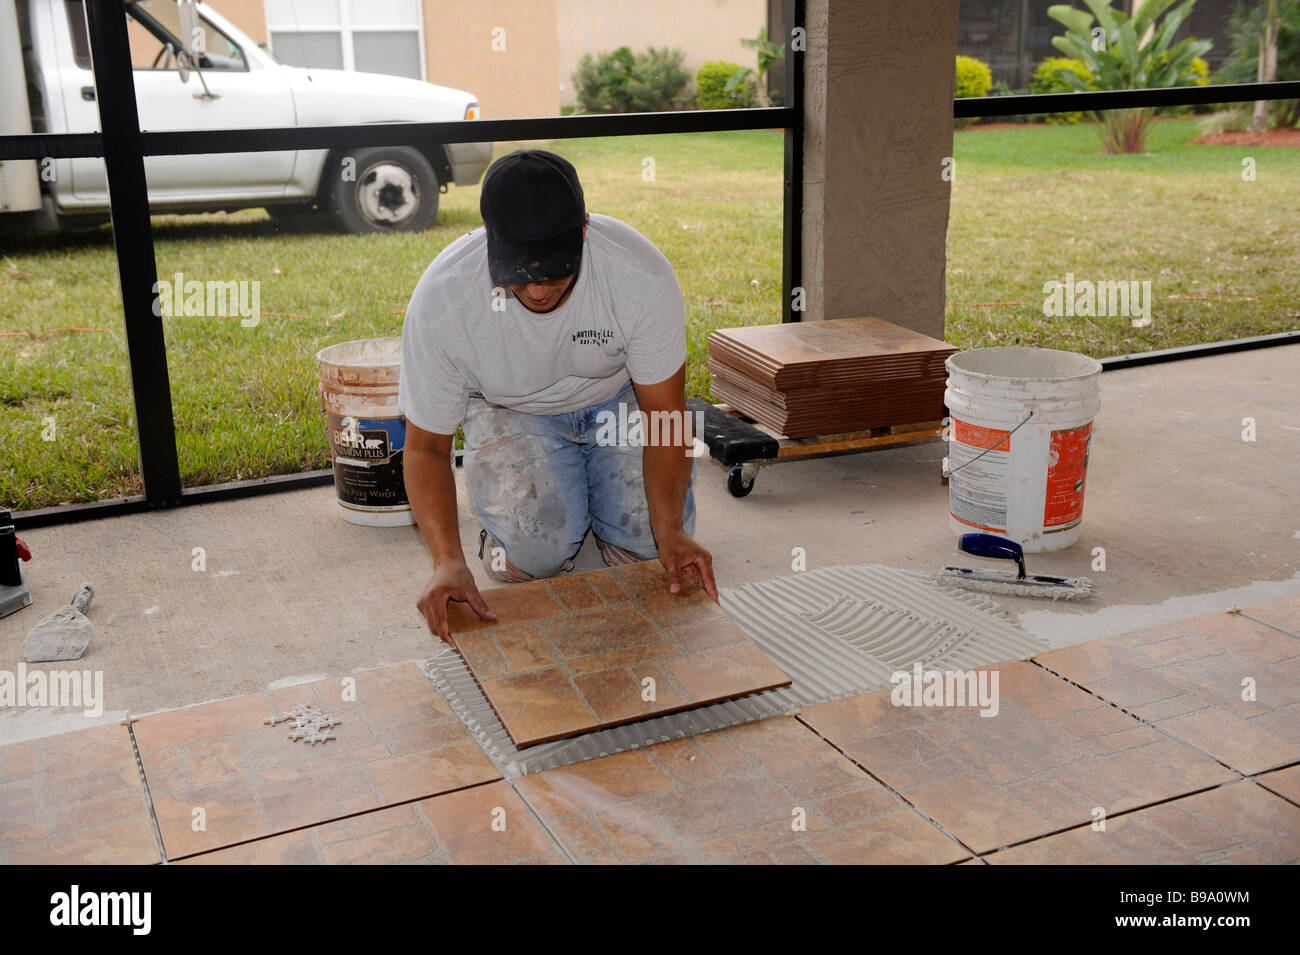 Charmant Male Hispanic Lays Ceramic Tile On Cement Floor In Patio Lanai